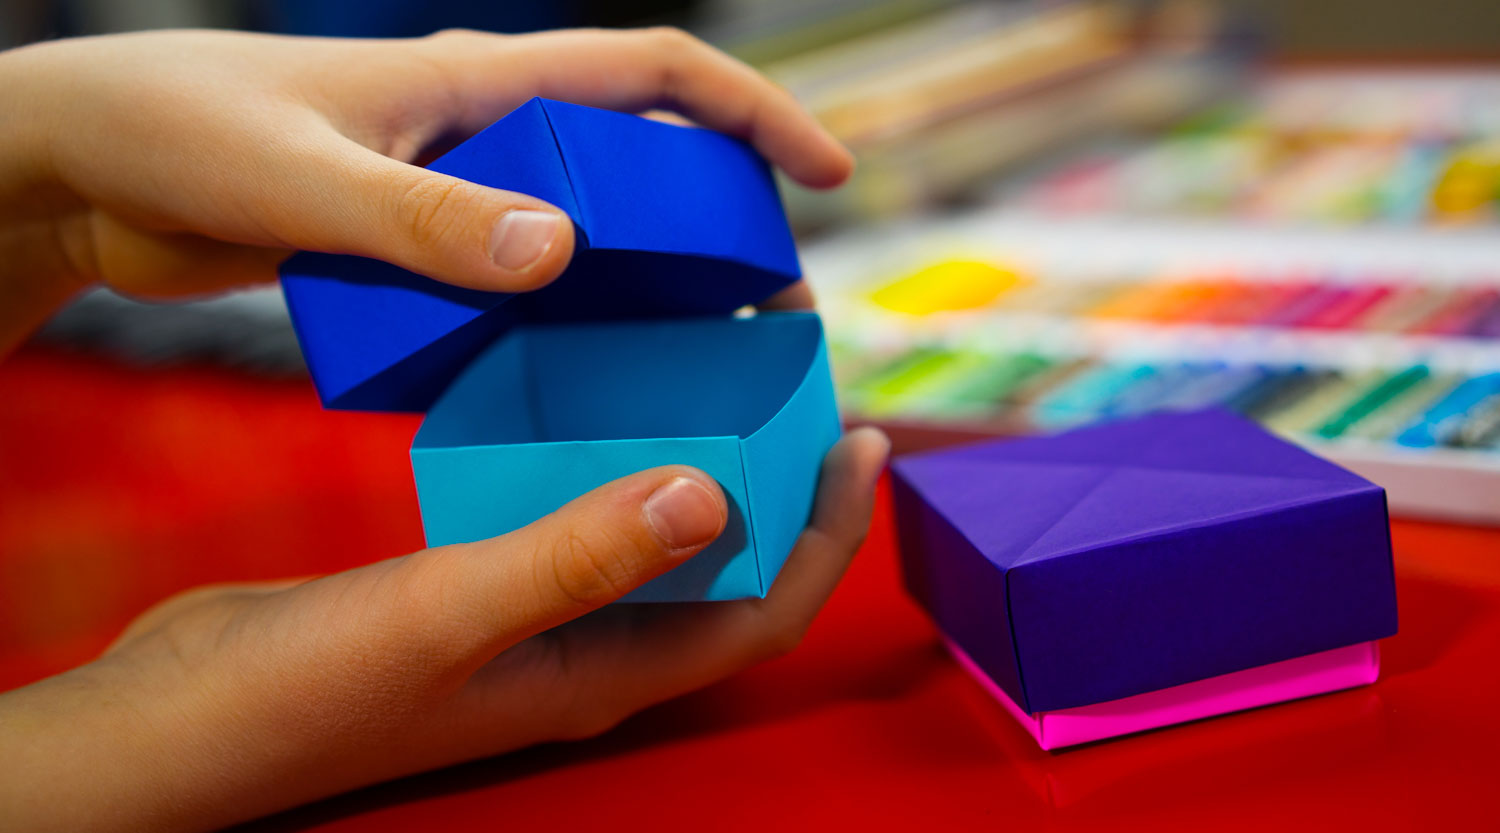 Origami for kids archives art for kids hub how to fold an origami box with lid jeuxipadfo Choice Image